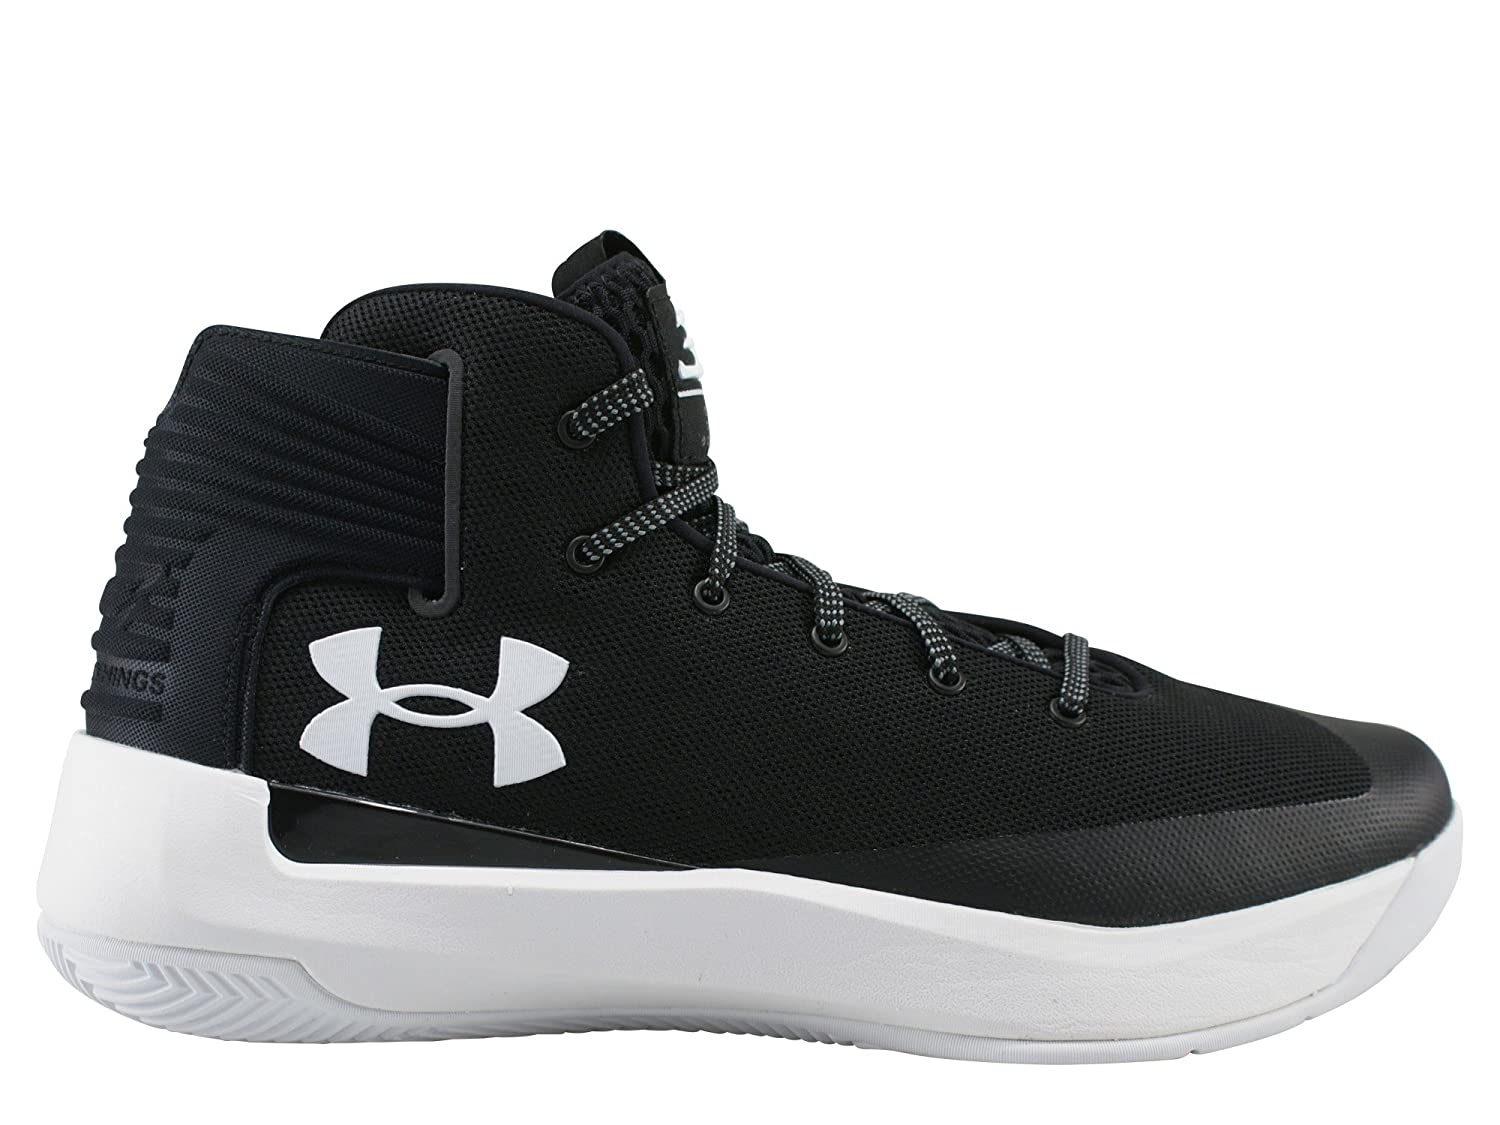 d0b6ce79 Amazon.com | Under Armour Men's Curry 3 Basketball Shoes | Basketball